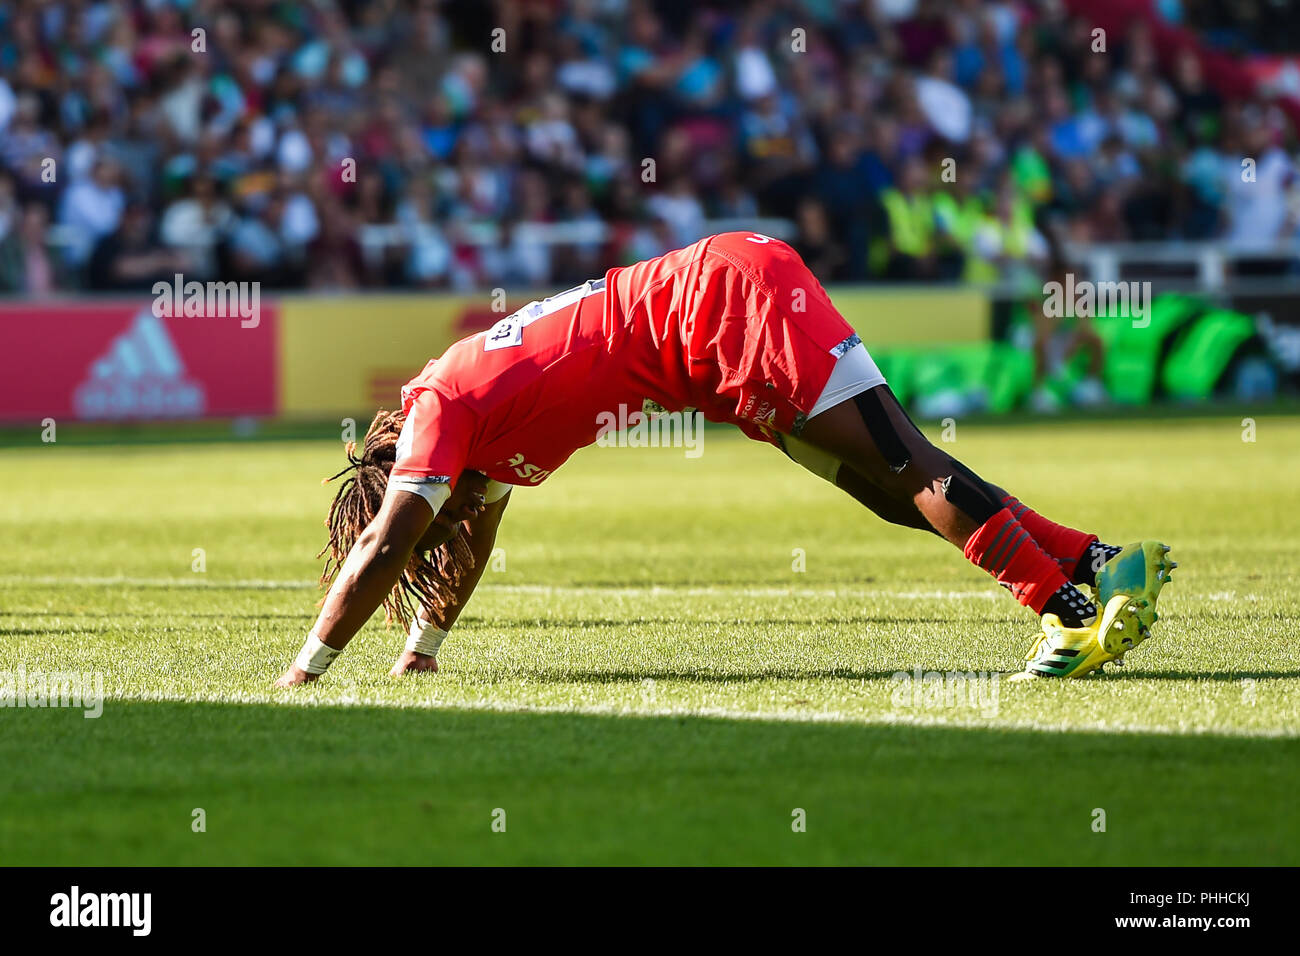 Twickenham, London, UK. 1st September, 2018. Marland Yarde of Sale Sharks starches during Gallagher Premiership match between Harlequins and Sale Sharks at Twickenham Stoop on Saturday, 01 September 2018. LONDON ENGLAND. Credit: Taka G Wu Credit: Taka Wu/Alamy Live News - Stock Image